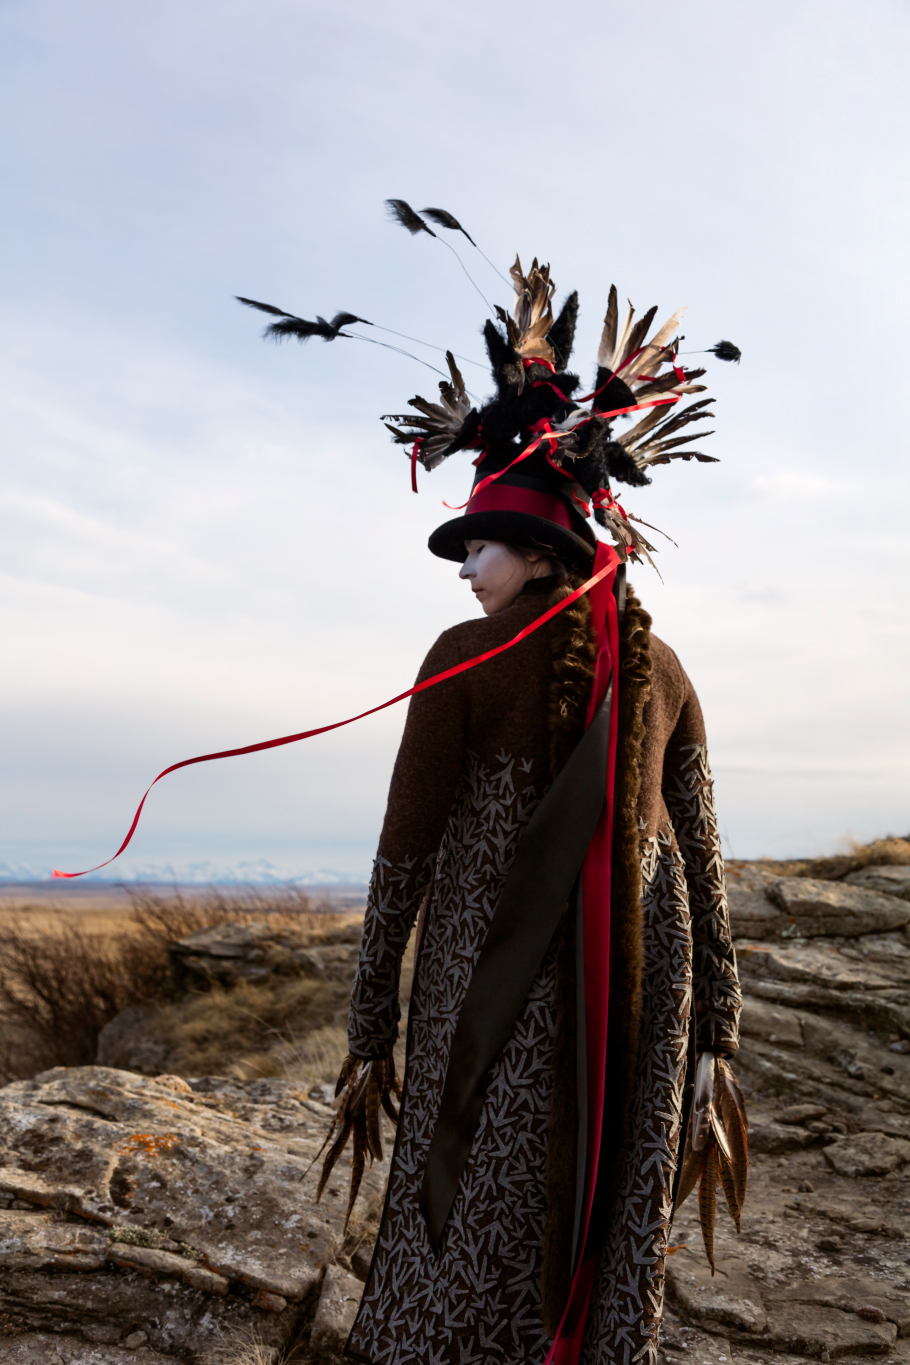 Bring Me to This Place by Meryl McMaster